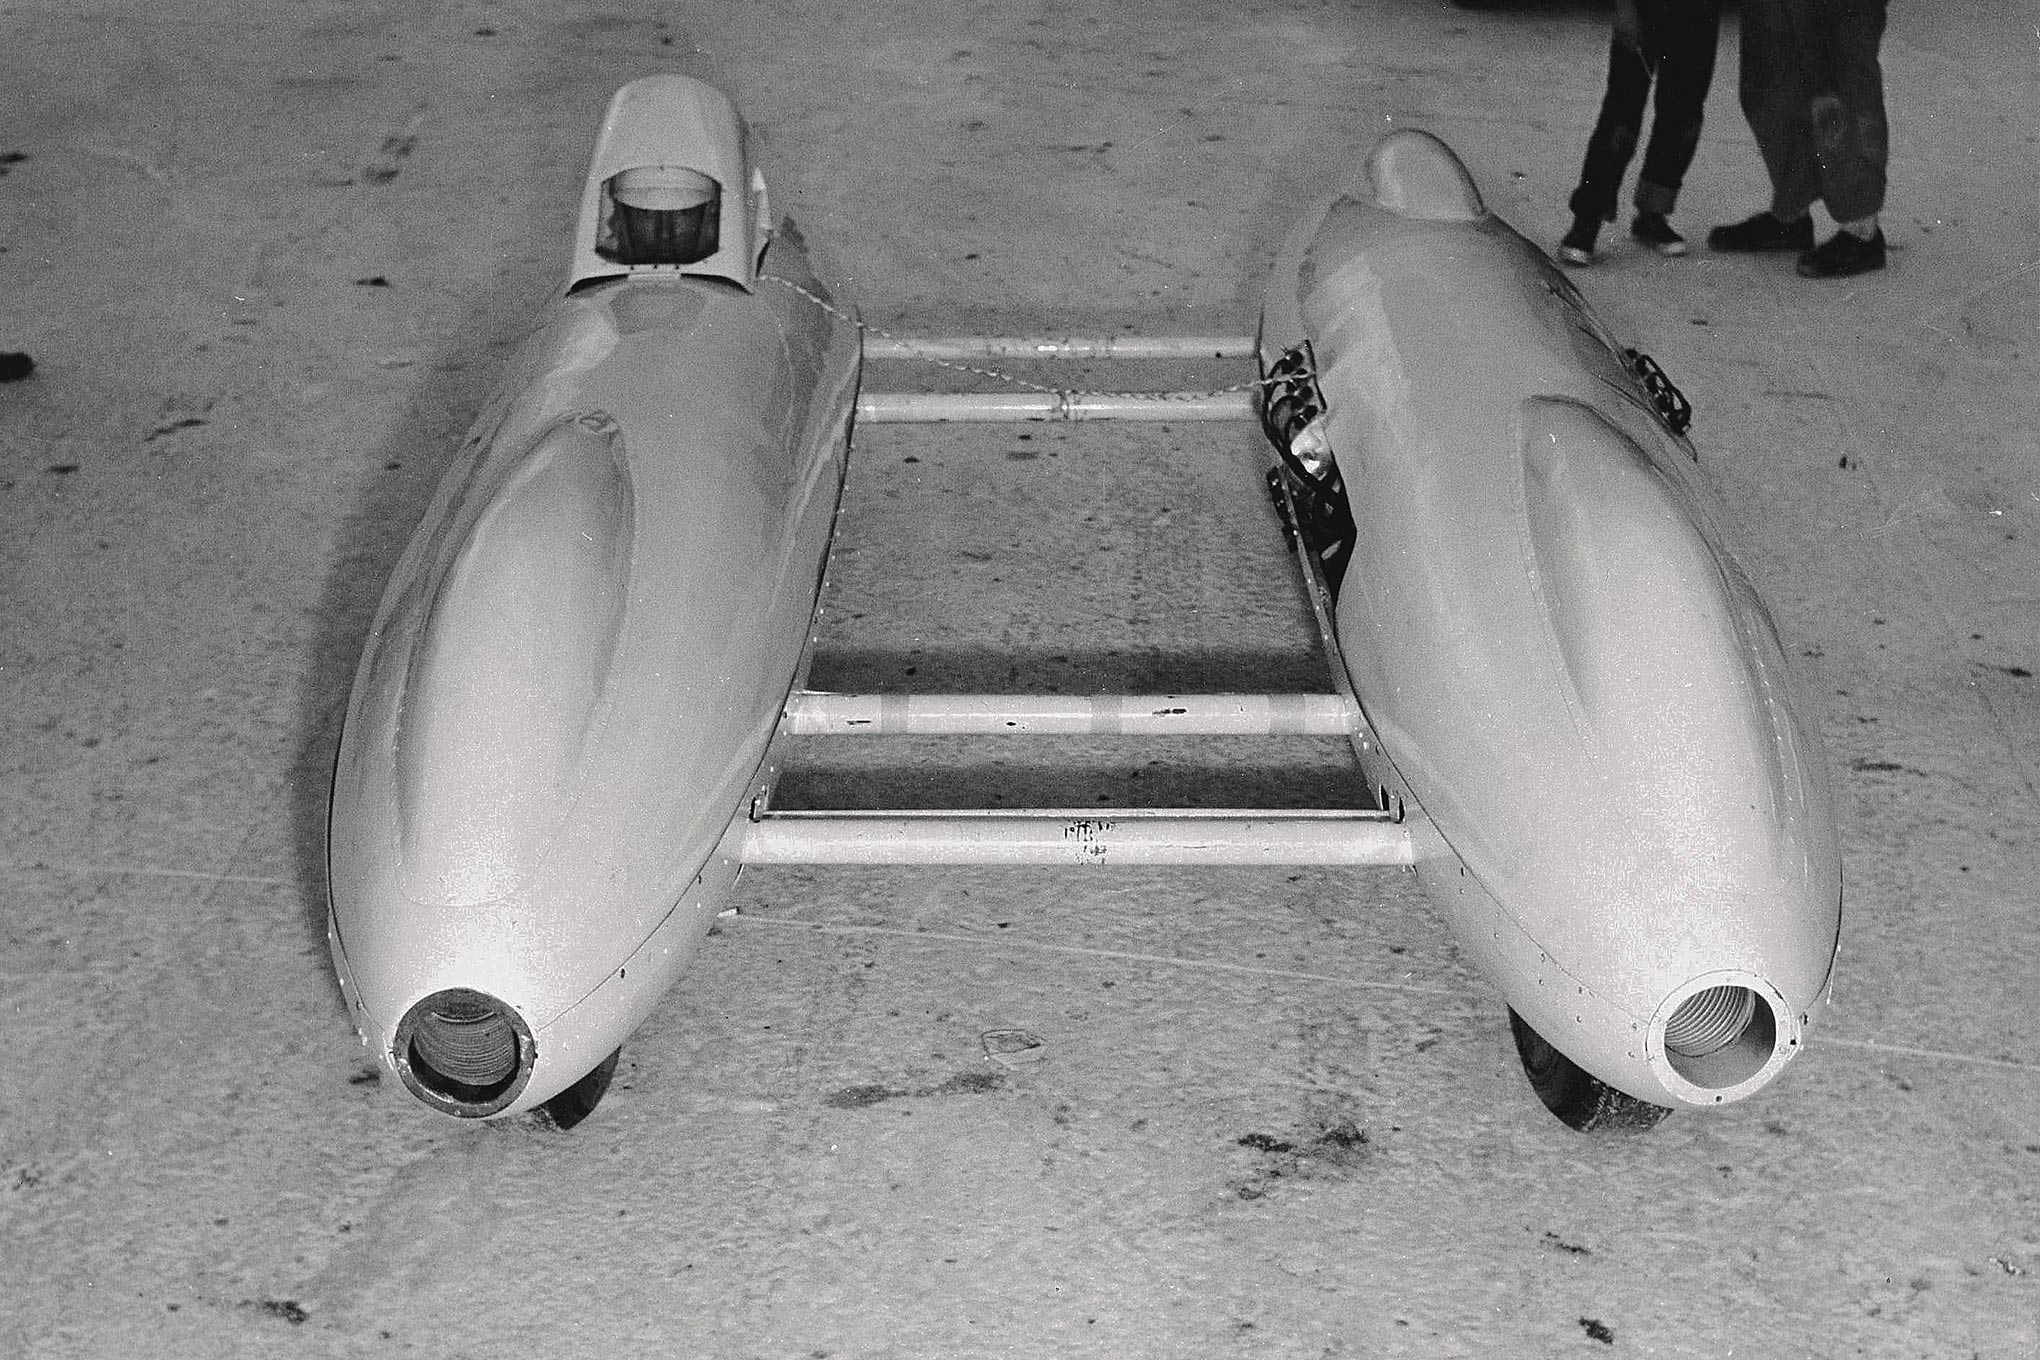 Tanks inspired countless ideas, not all of them good. Howard Johansen's twin-boom streamliner was one of the latter. Still, this second version with a 296-inch DeSoto did go 200. Driver Lloyd Scott had a thing for the unconventional: he owned and drove the twin-engine Bustle Bomb dragster.